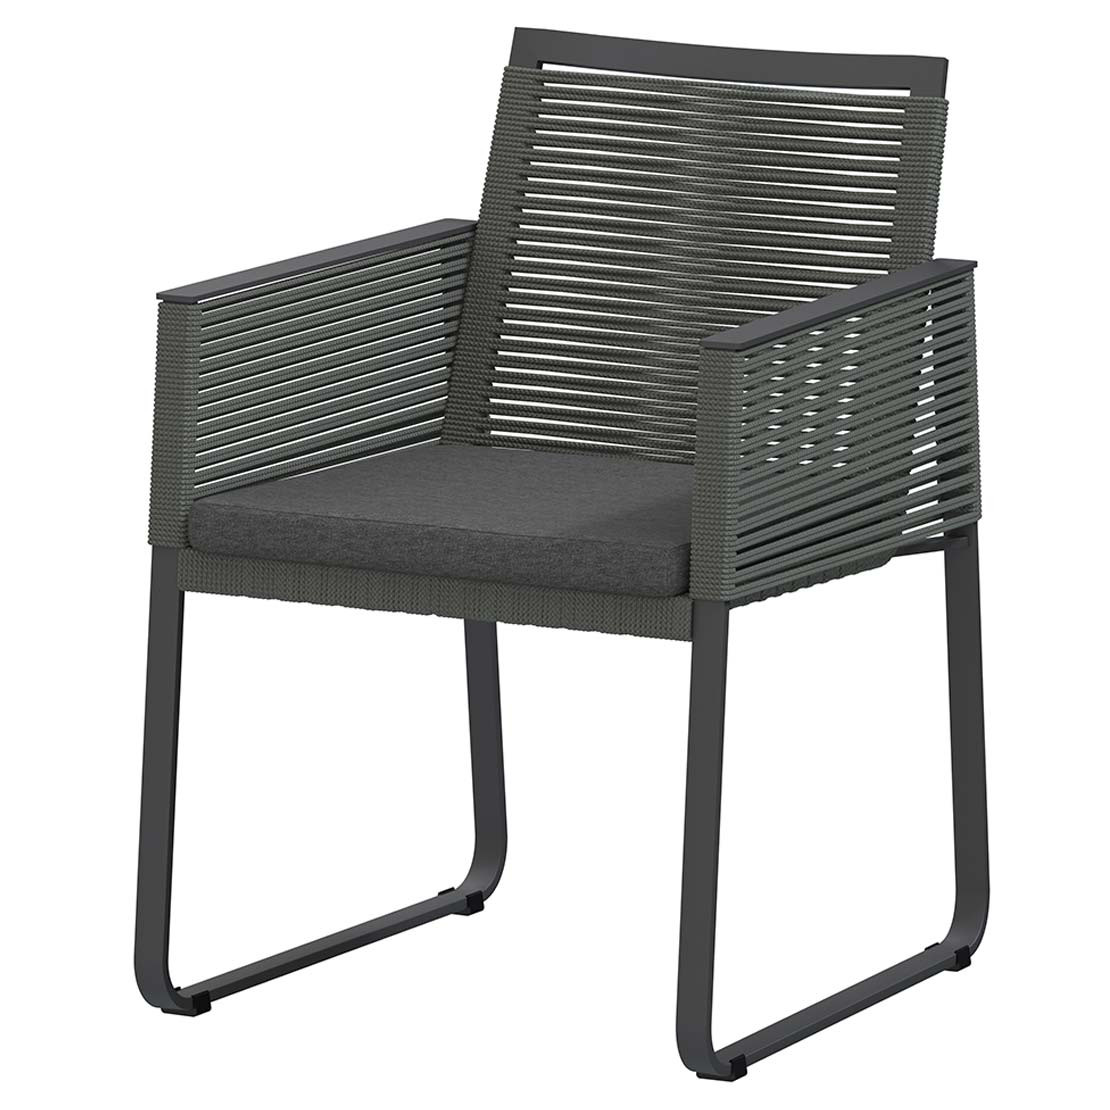 Ortea dining chair Platinum with cushion